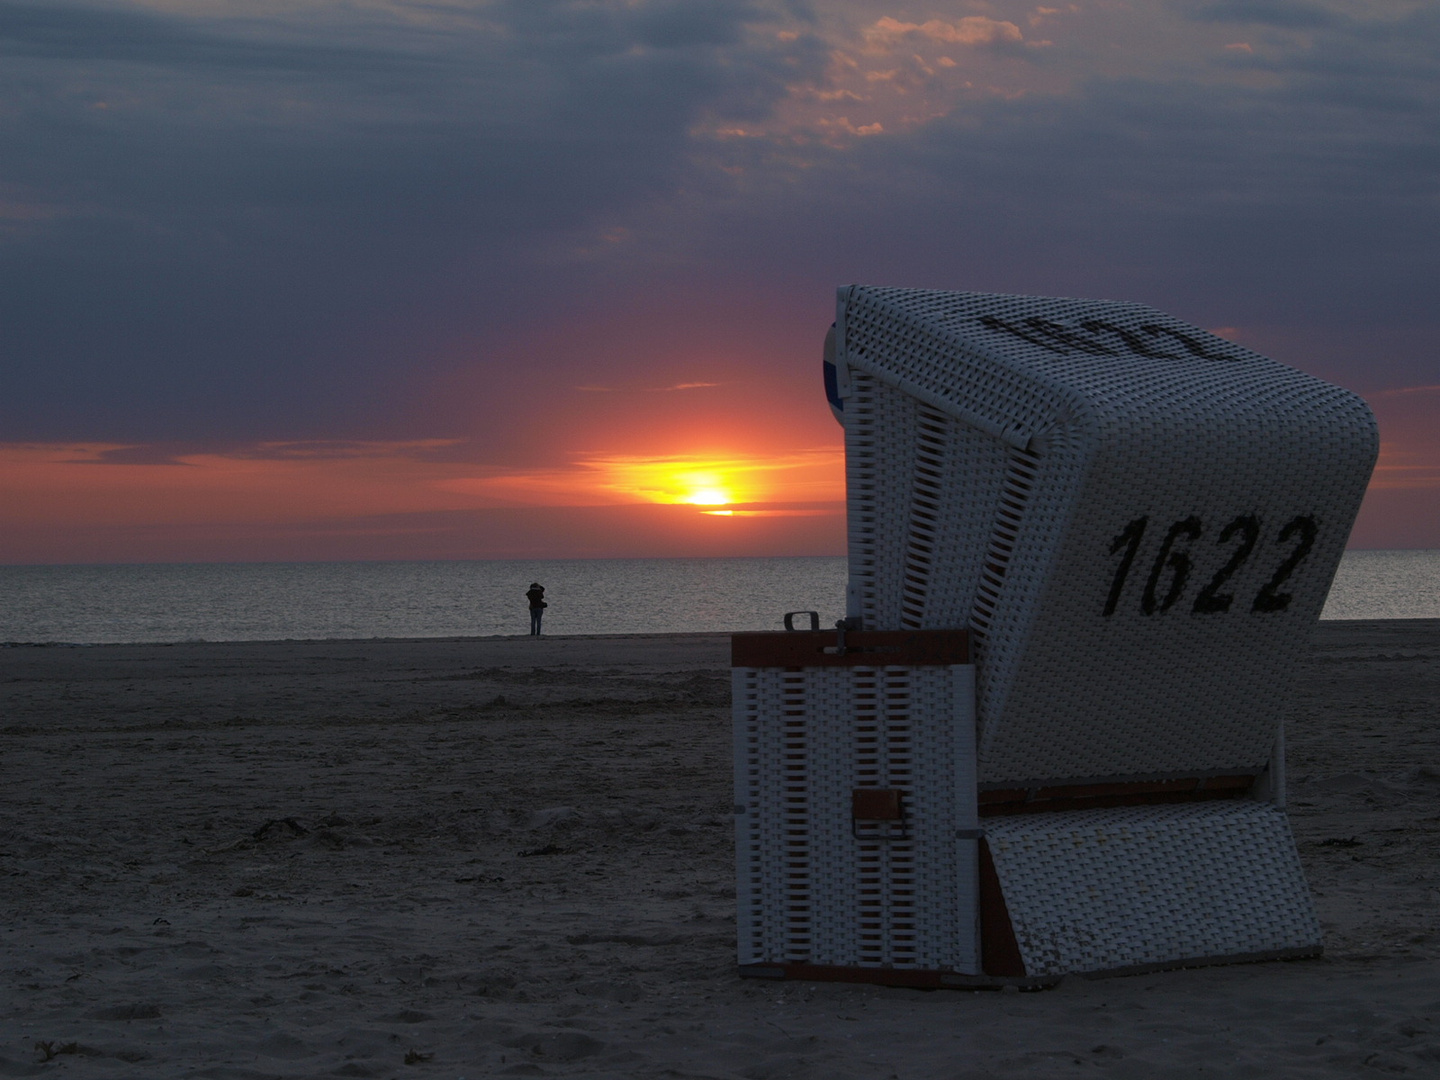 Sonnenuntergang am Strand in St. Peter Ording